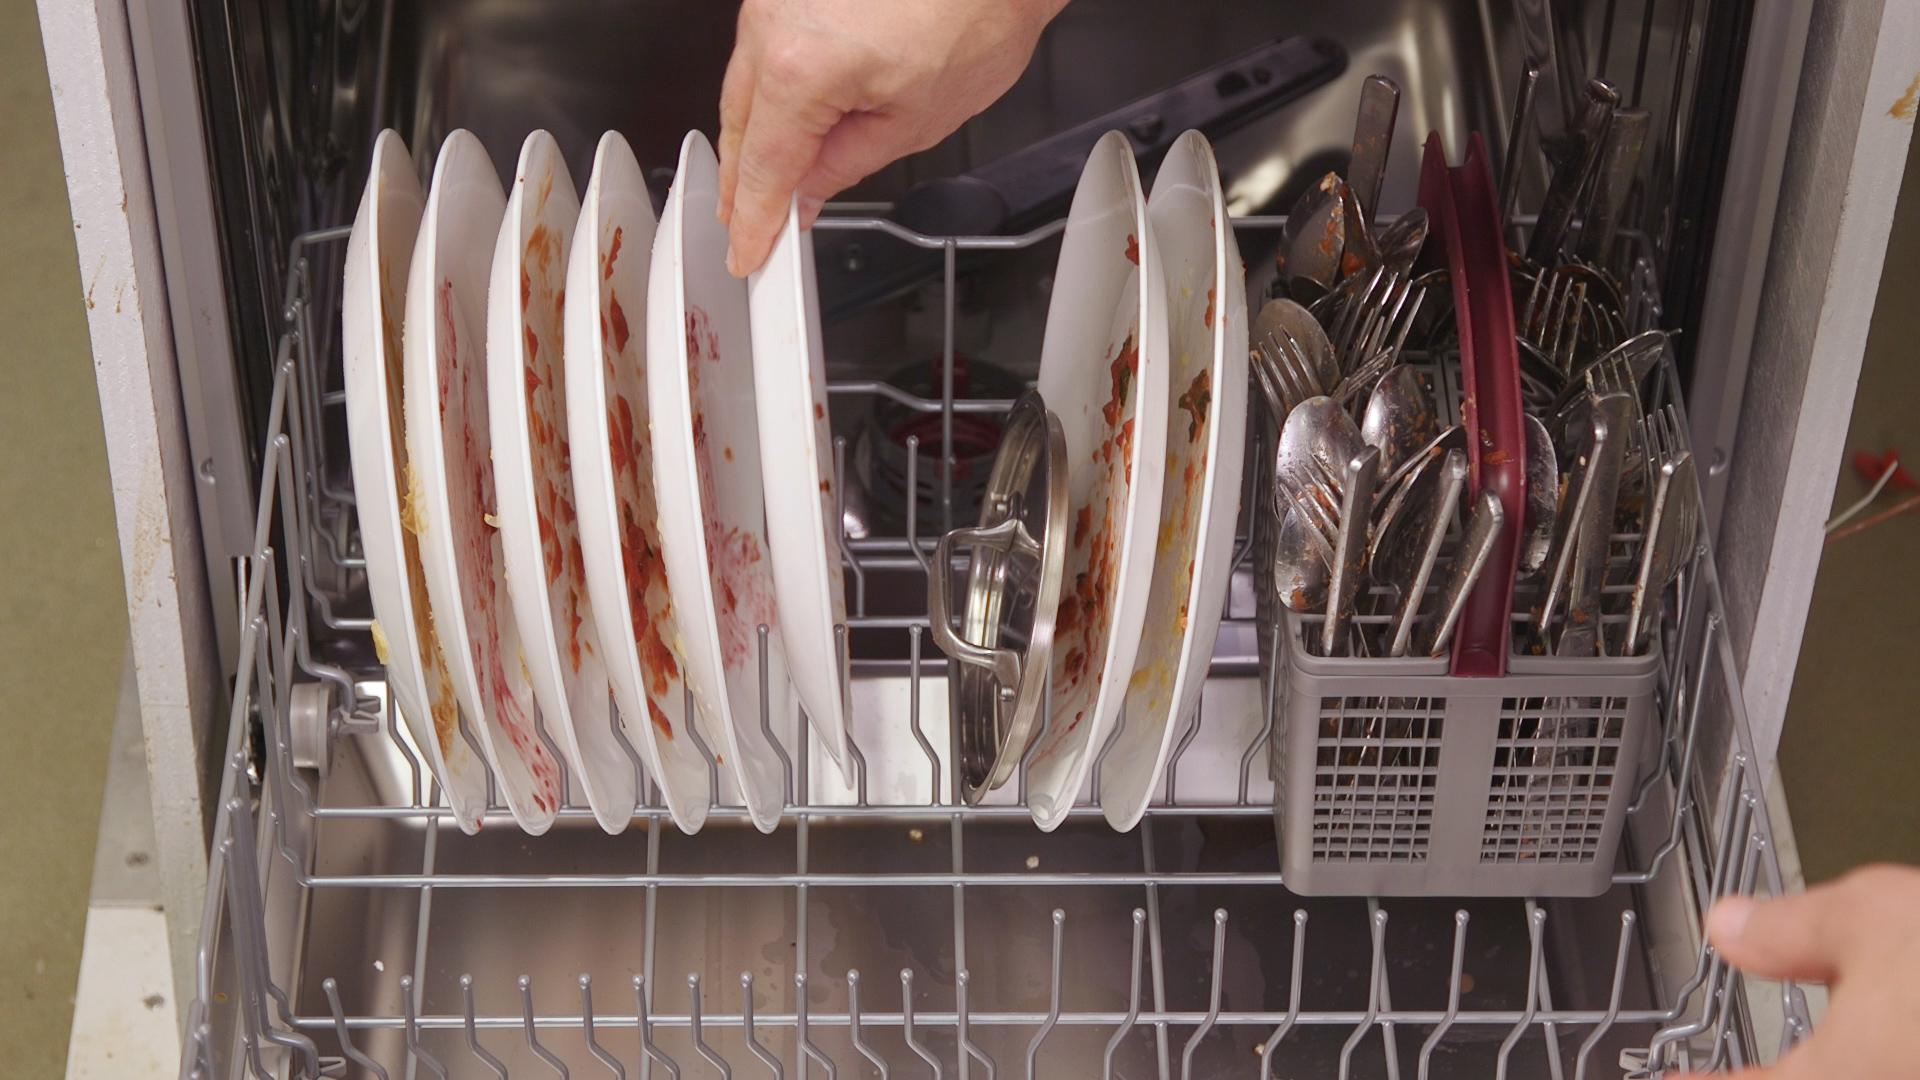 How To Buy Dishwasher 5 Best Dishwashers Under 500 Consumer Reports